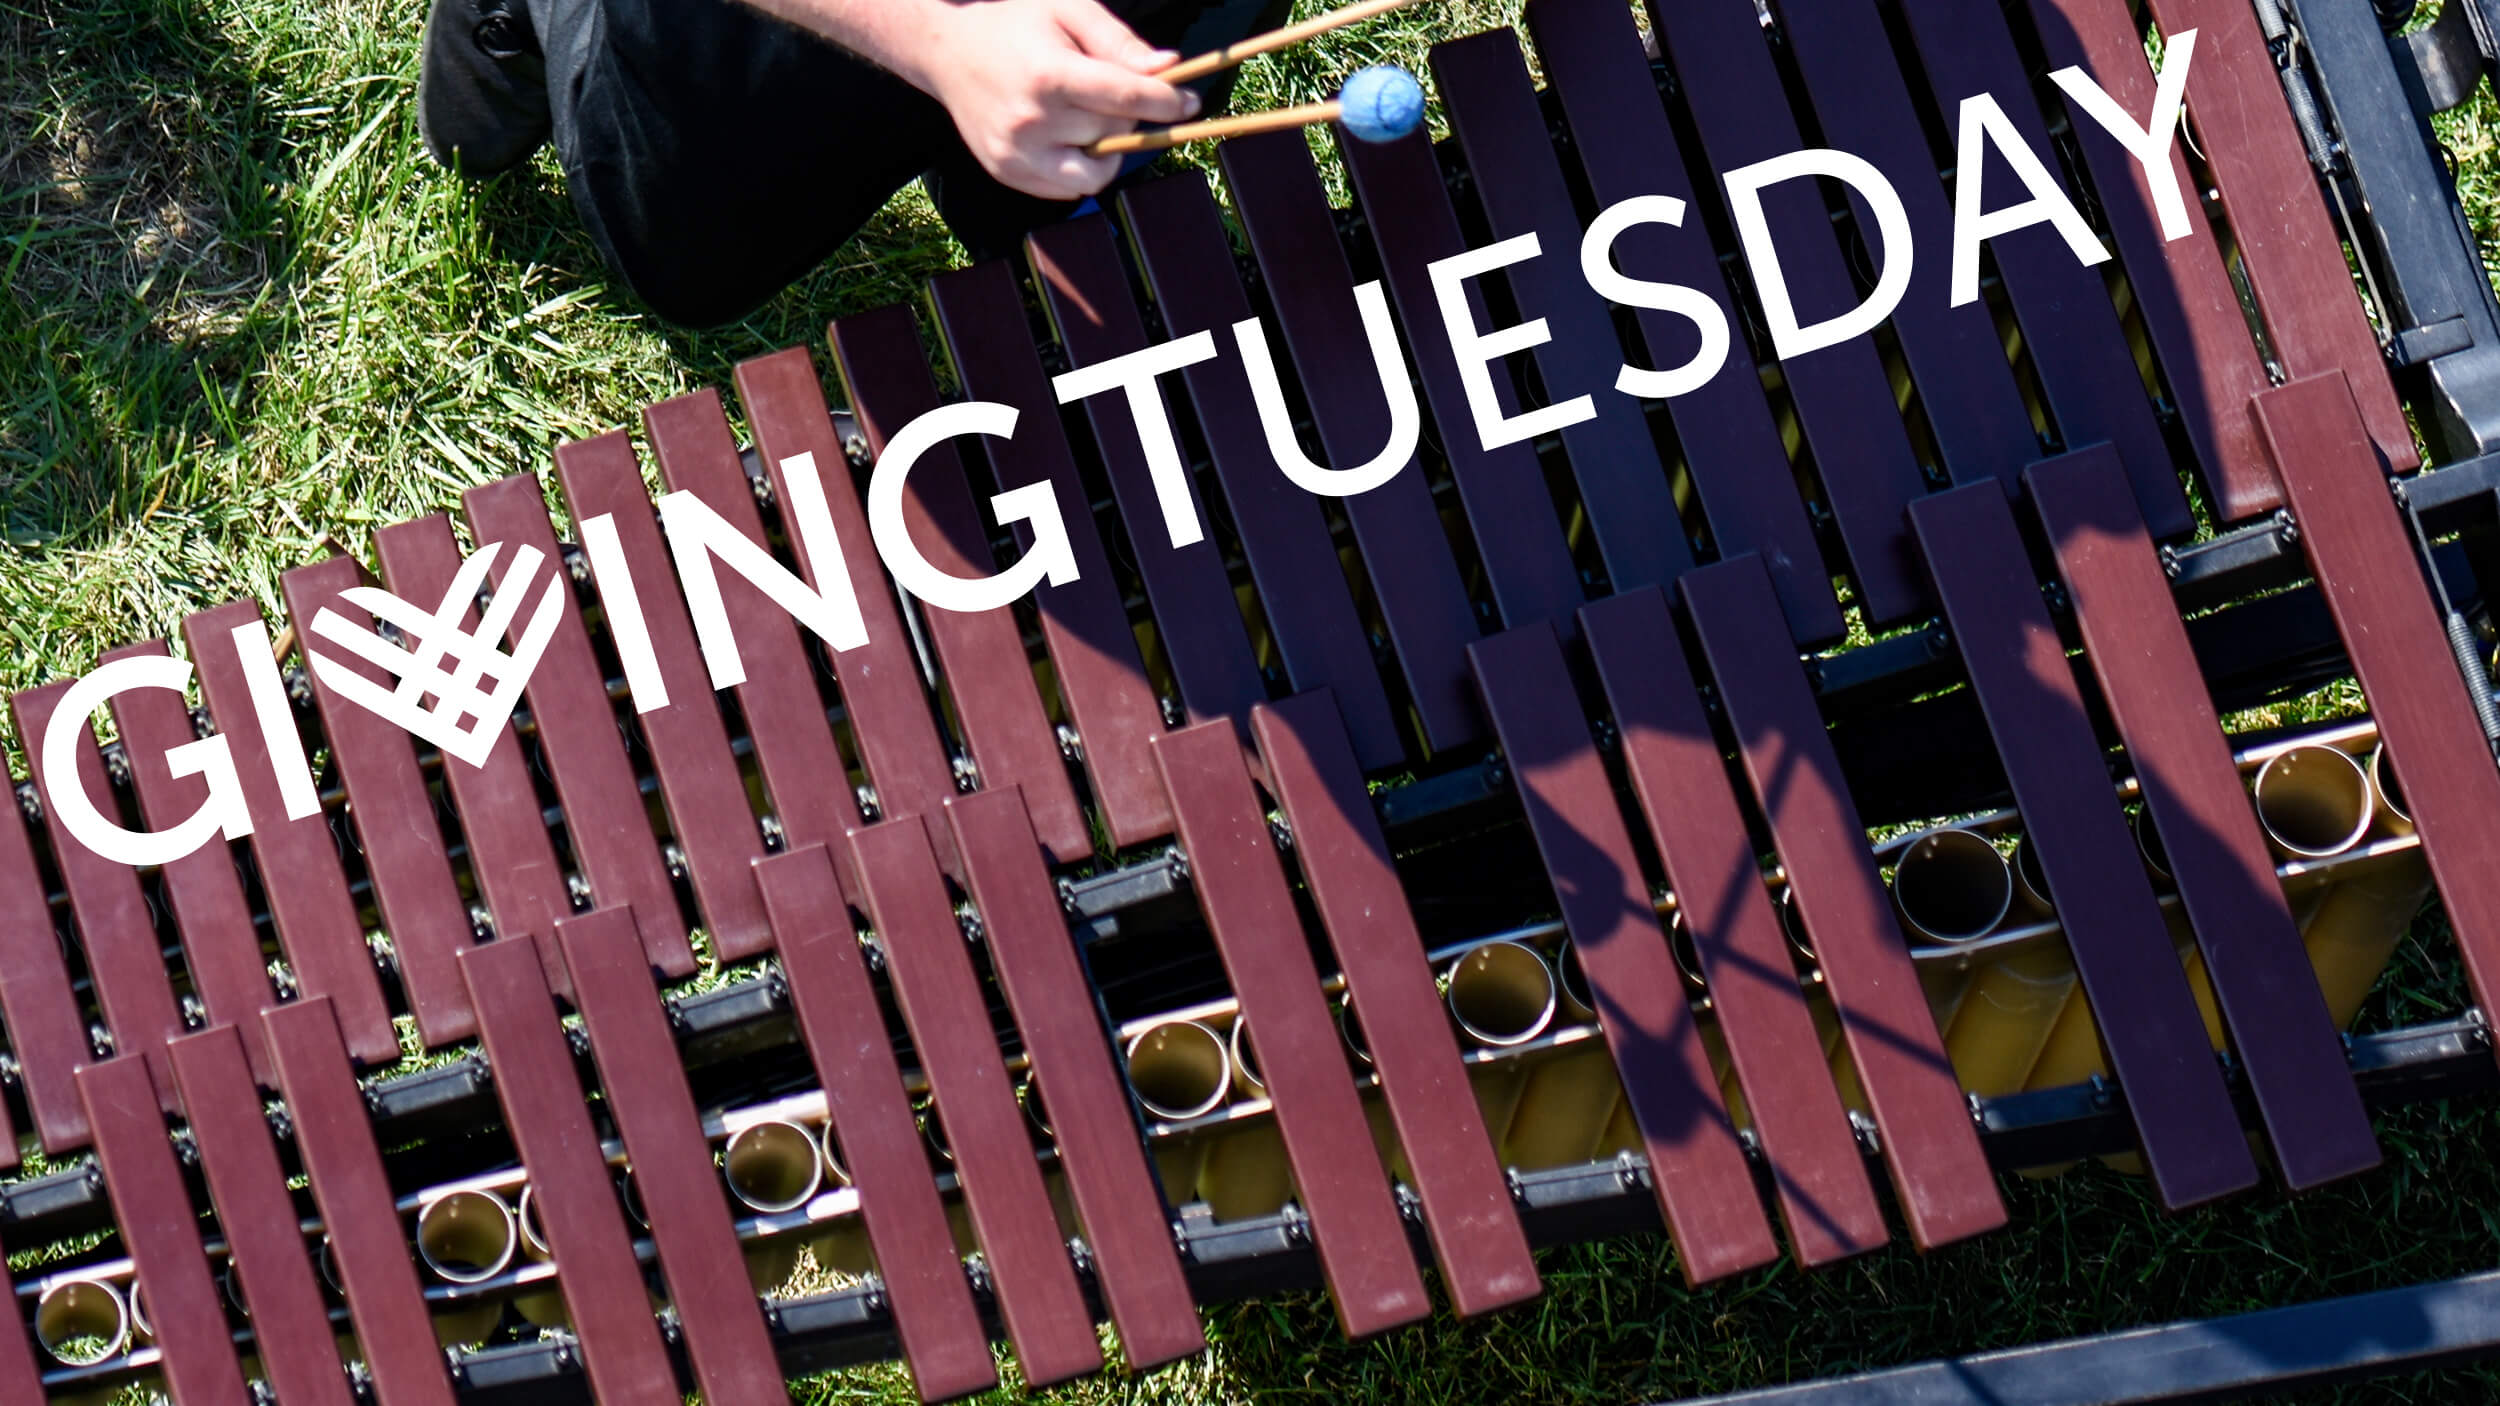 Give back to drum corps on #GivingTuesday